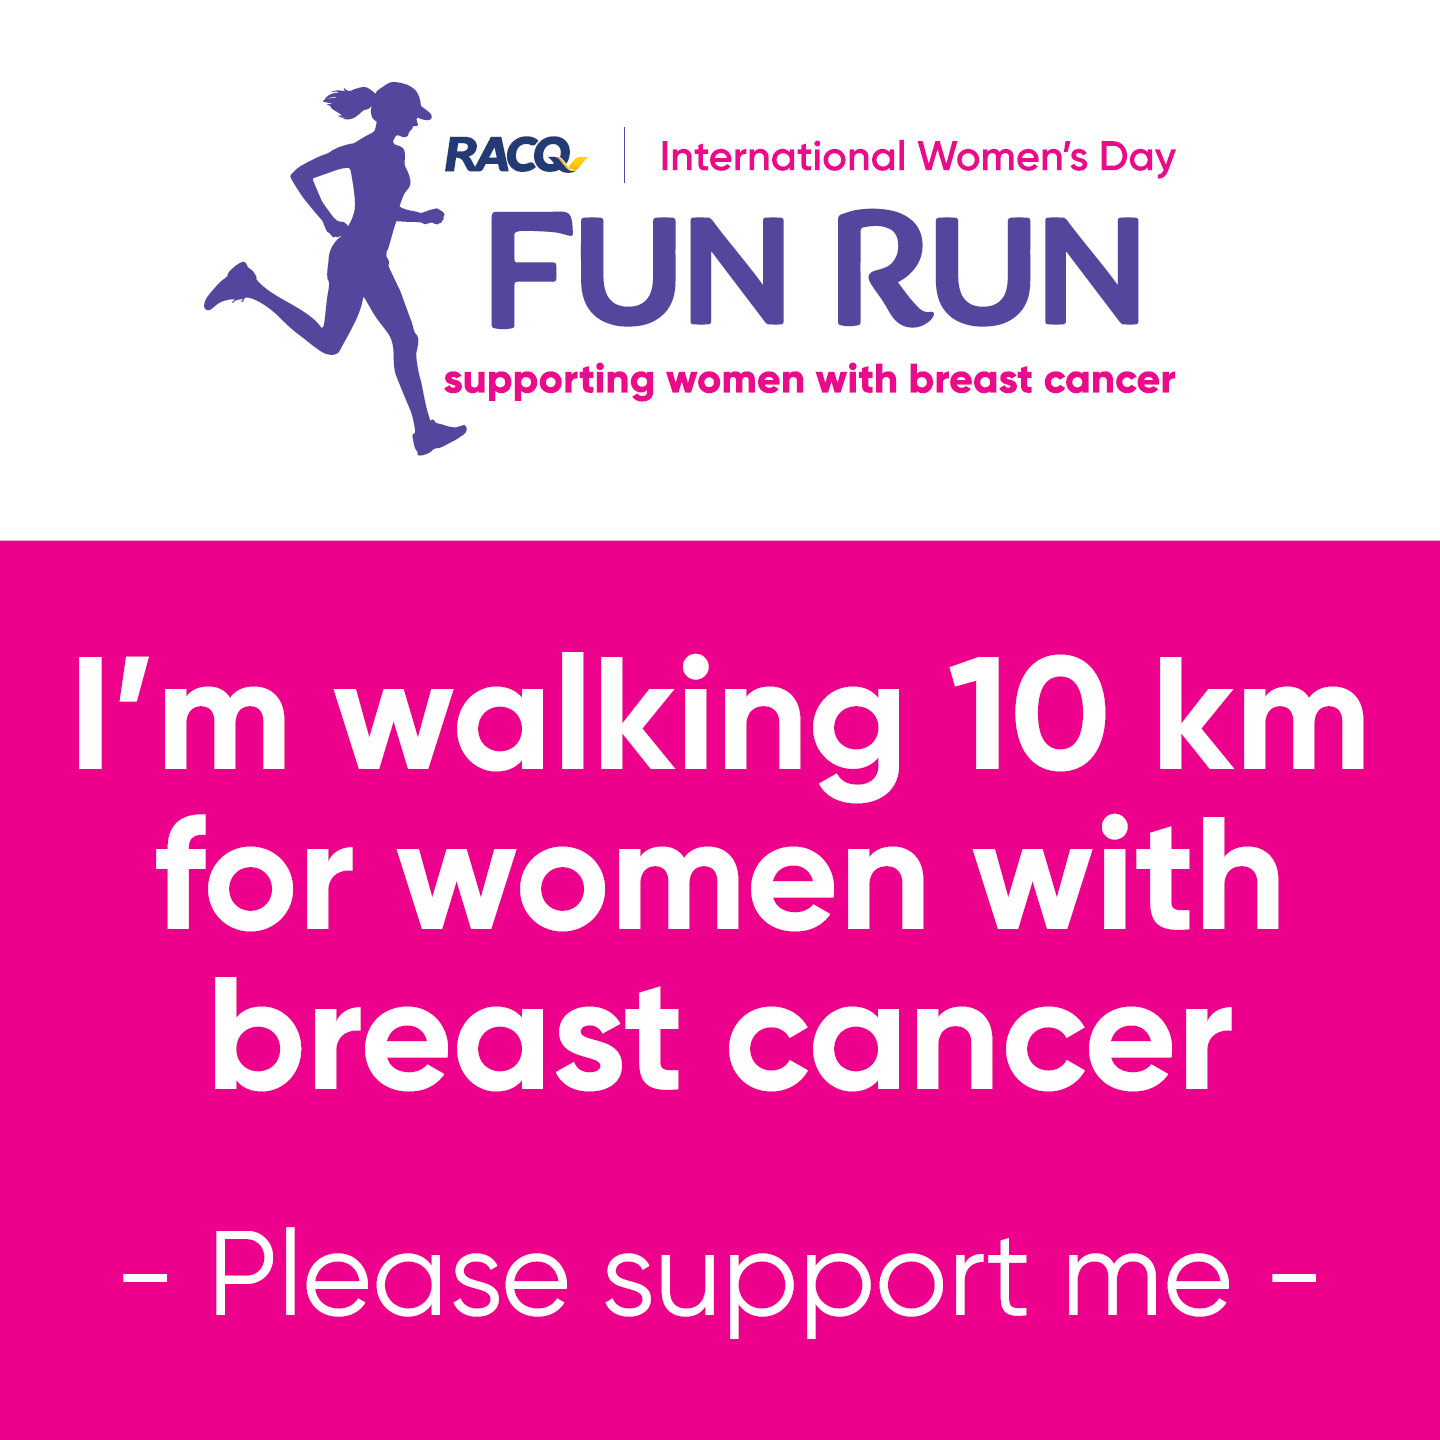 Instagram - I'm walking 10 km - please support